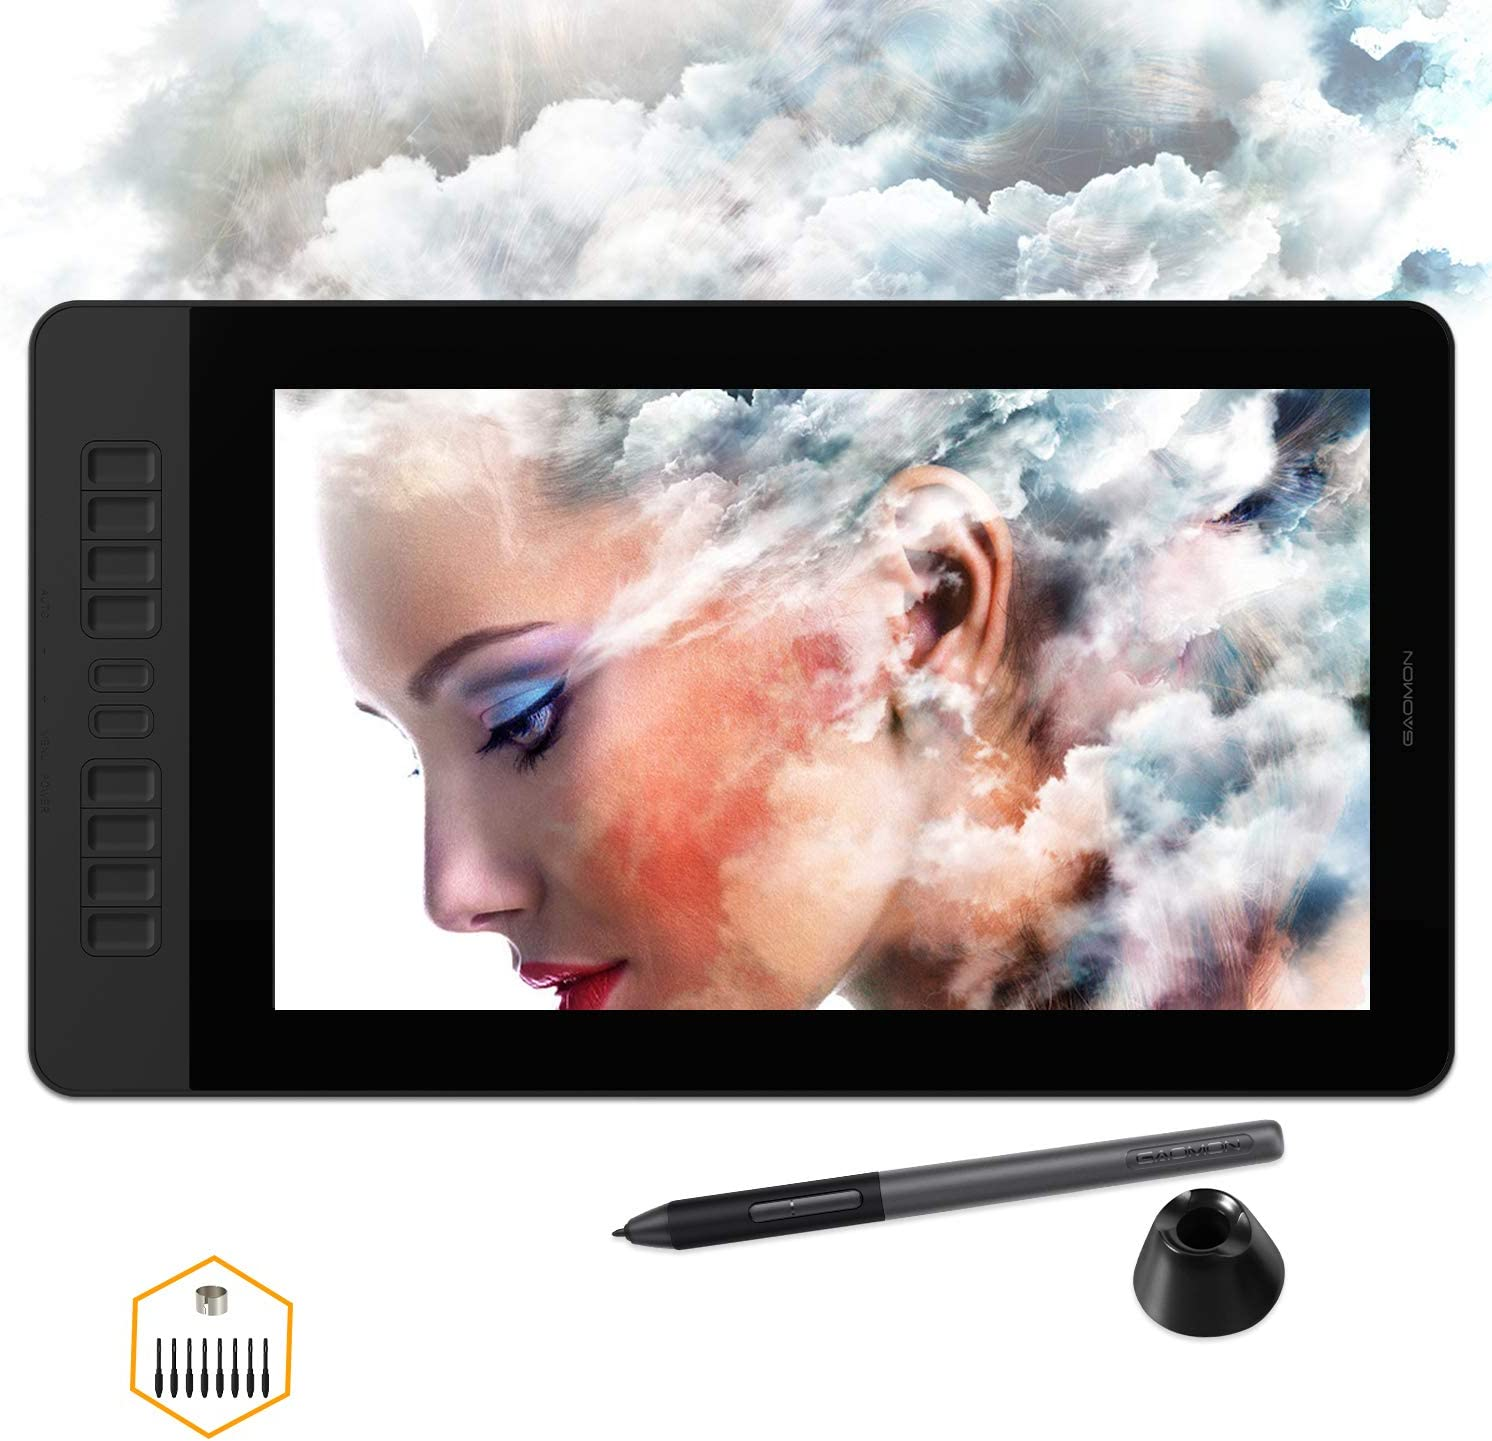 GAOMON PD1561 Pen Display with Tilt-Support Battery-Free 8192 Level Pen 10 Shortcut Keys HD Screen Drawing Tablet with Monitor Stand - 15.6 Inches